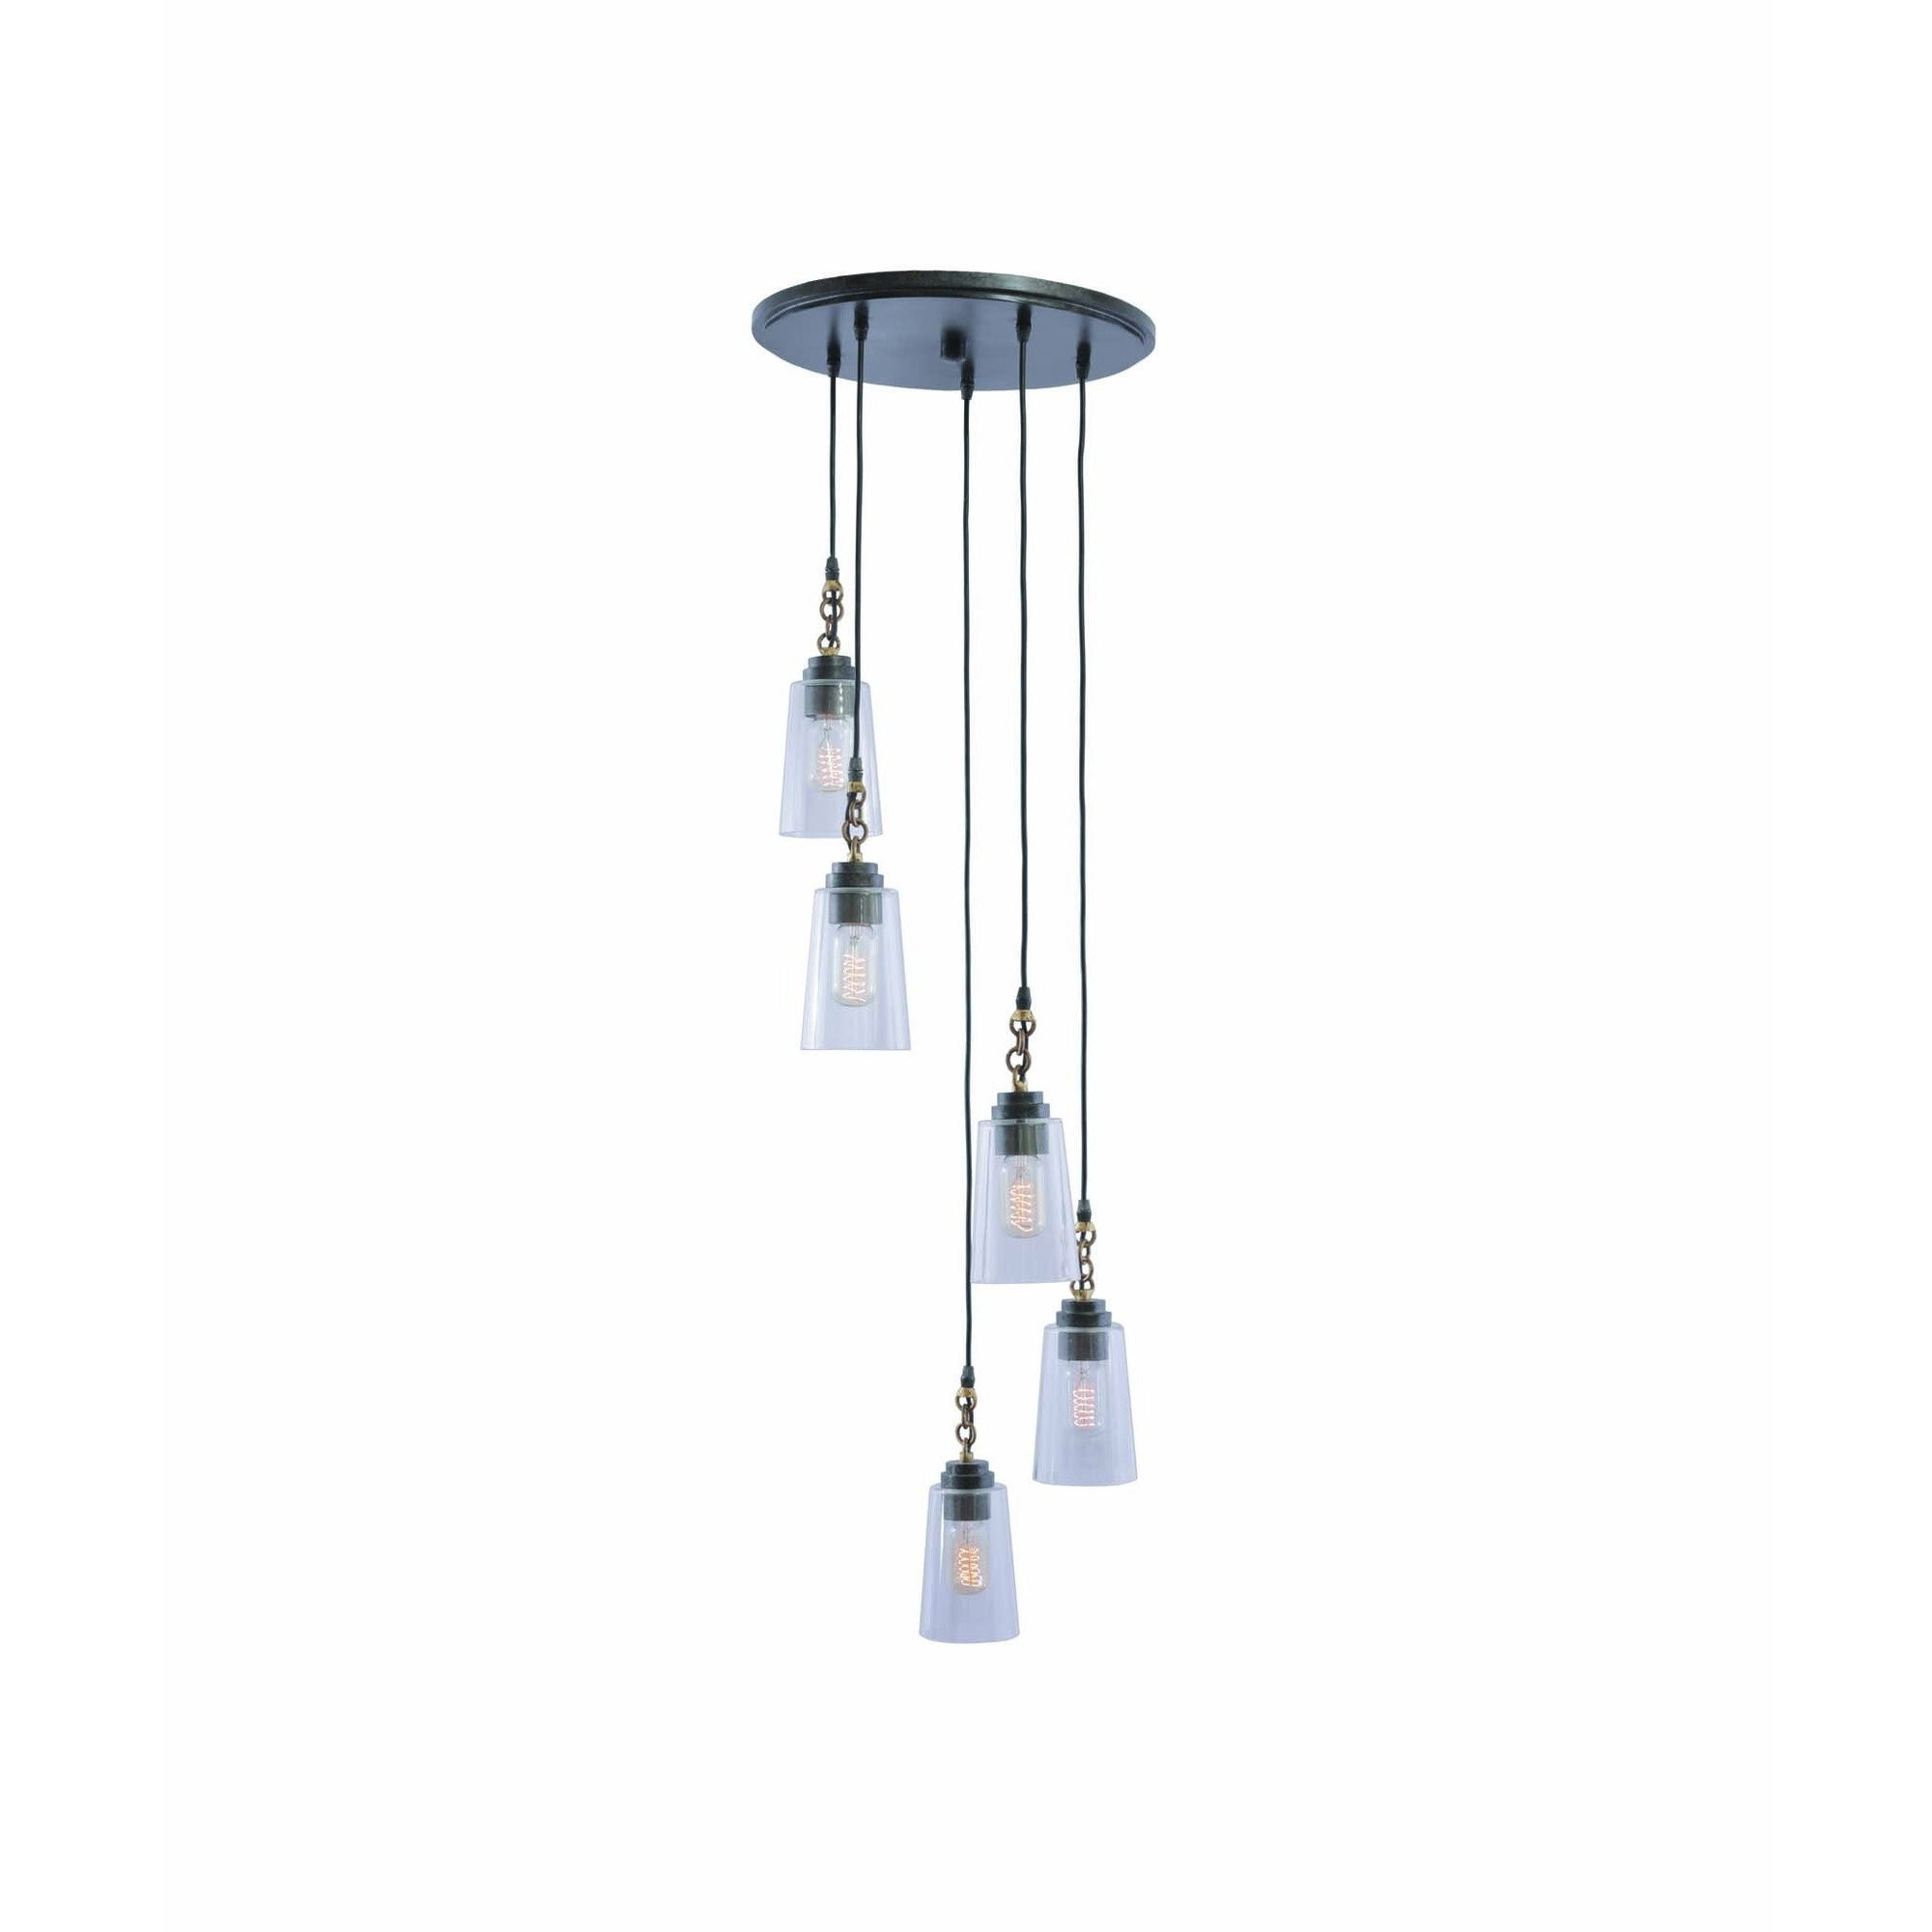 Kalco Lighting Pendants Milled Iron Dillon 5 Light Cluster Pendant By Kalco Lighting 504951